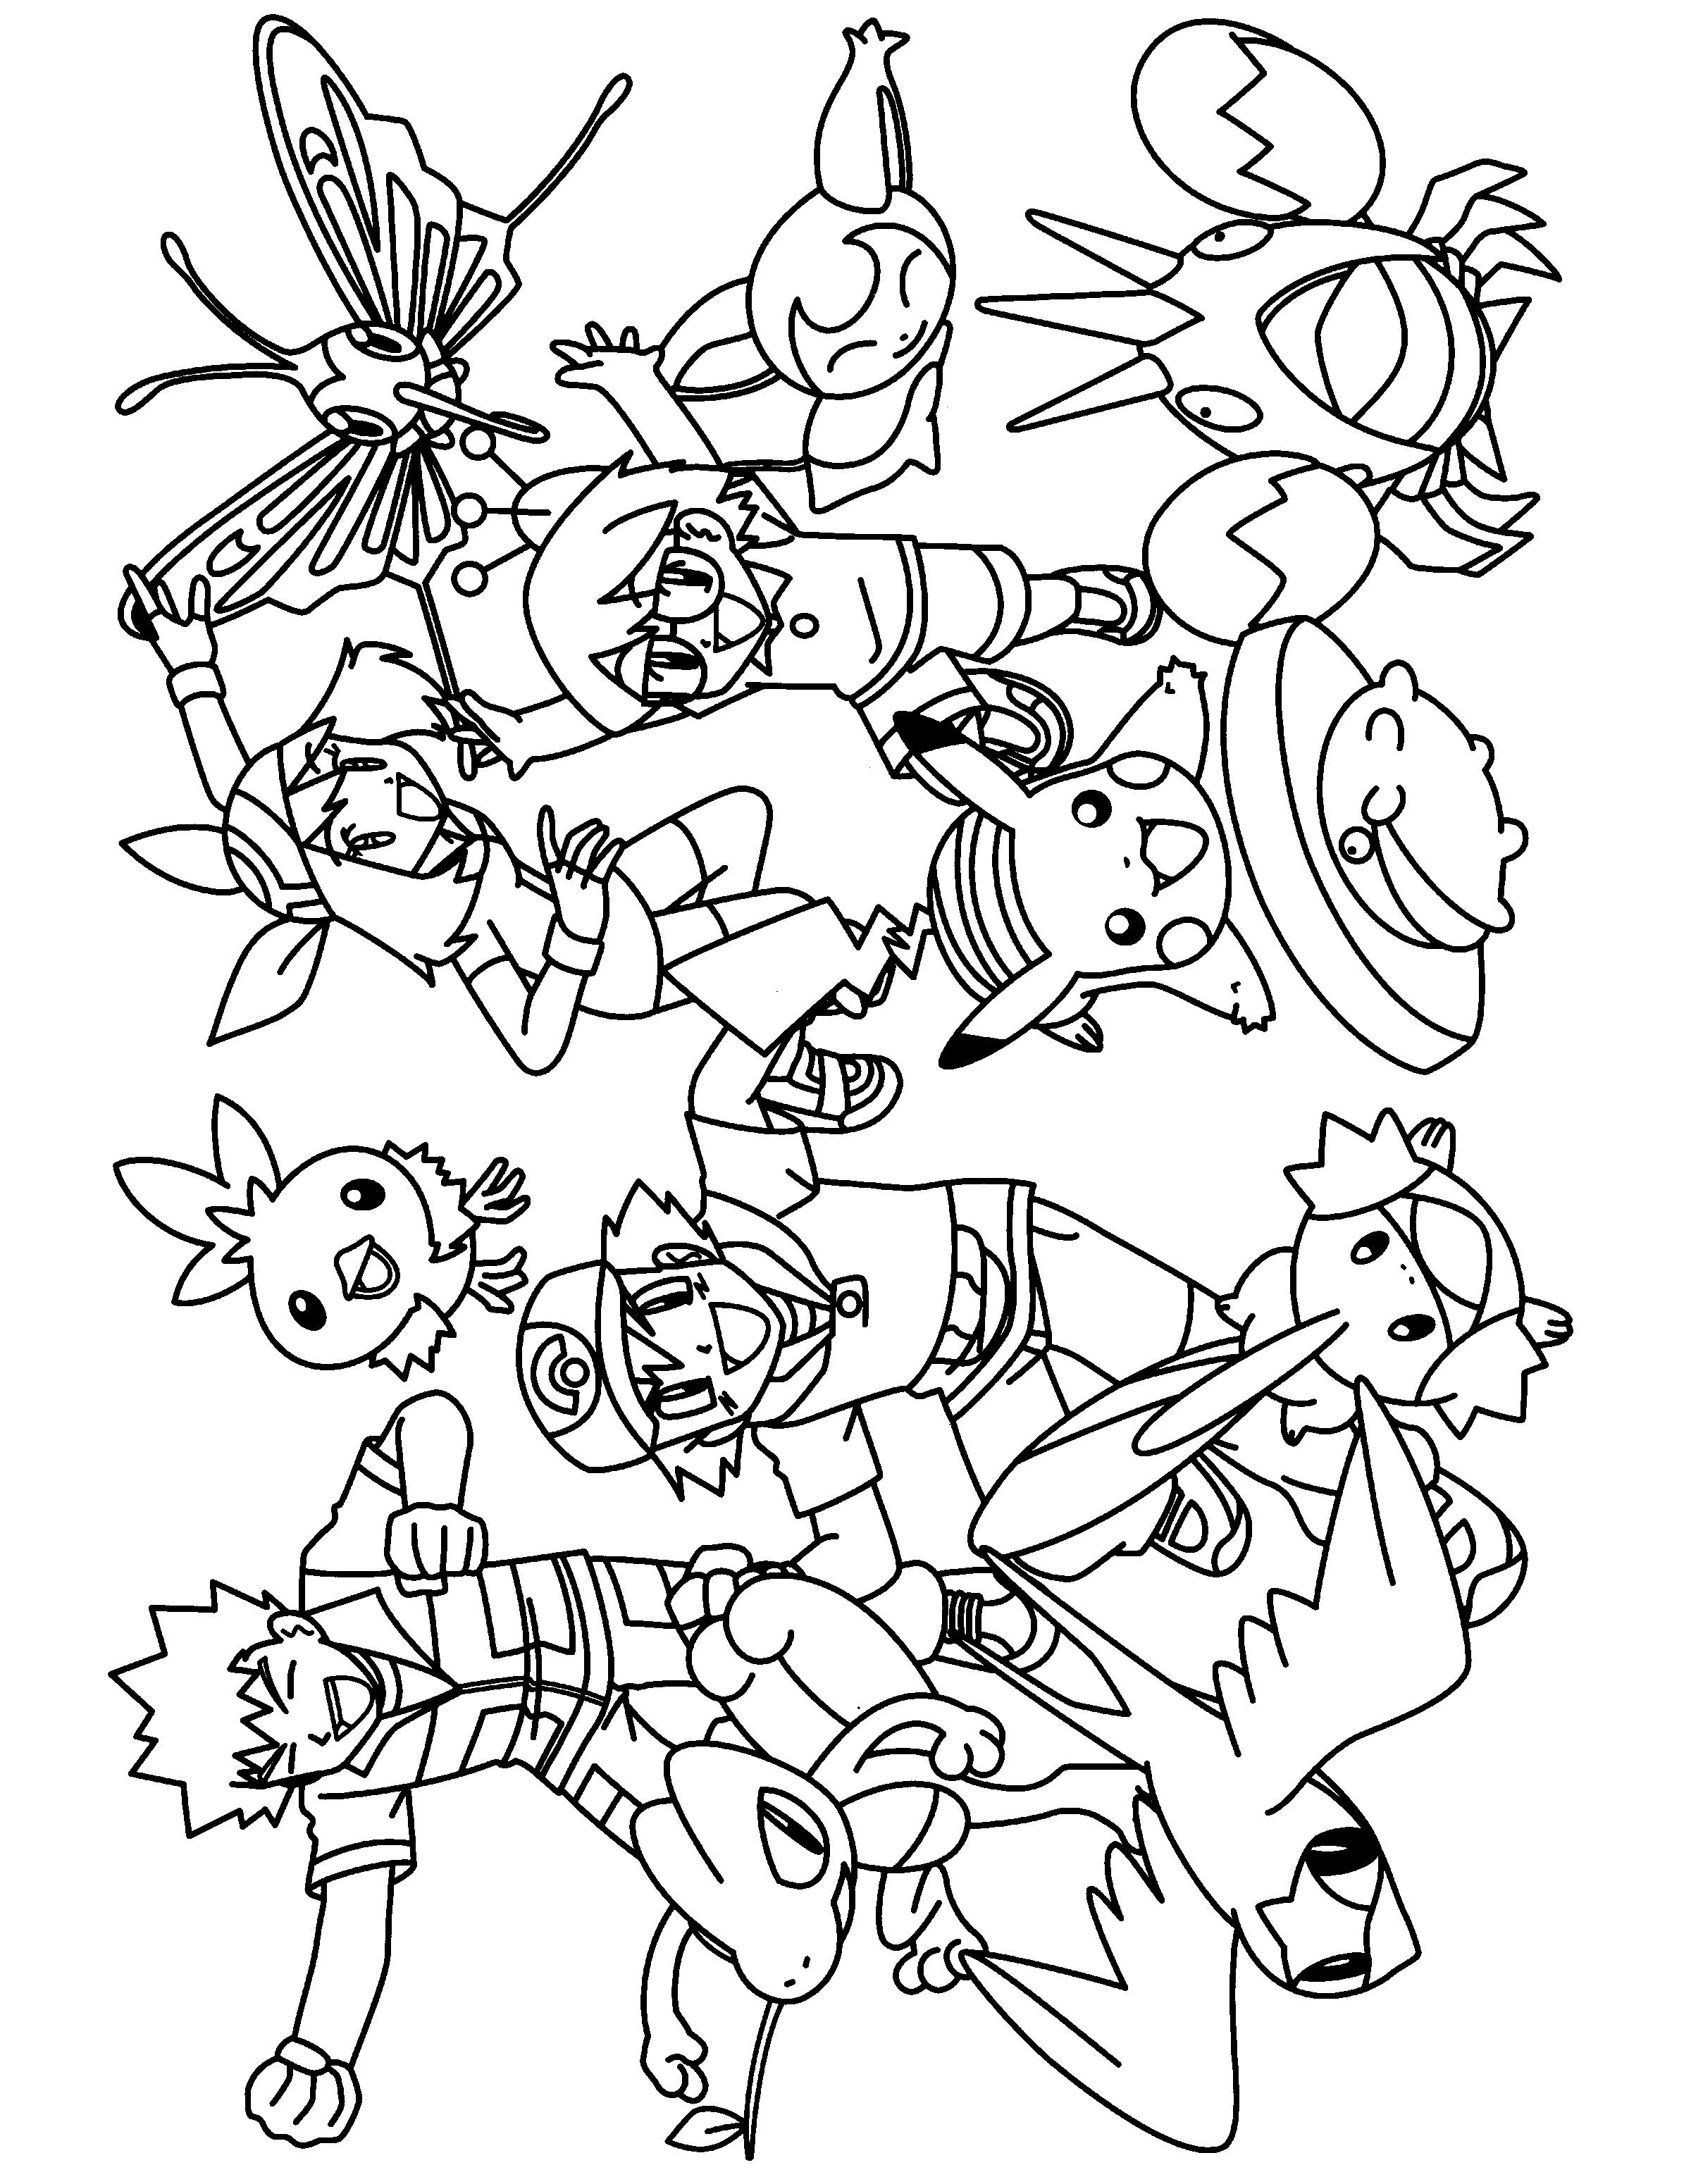 pictures of pokemon characters coloring pages | Pokemon Coloring Pages. Join your favorite Pokemon on an ...